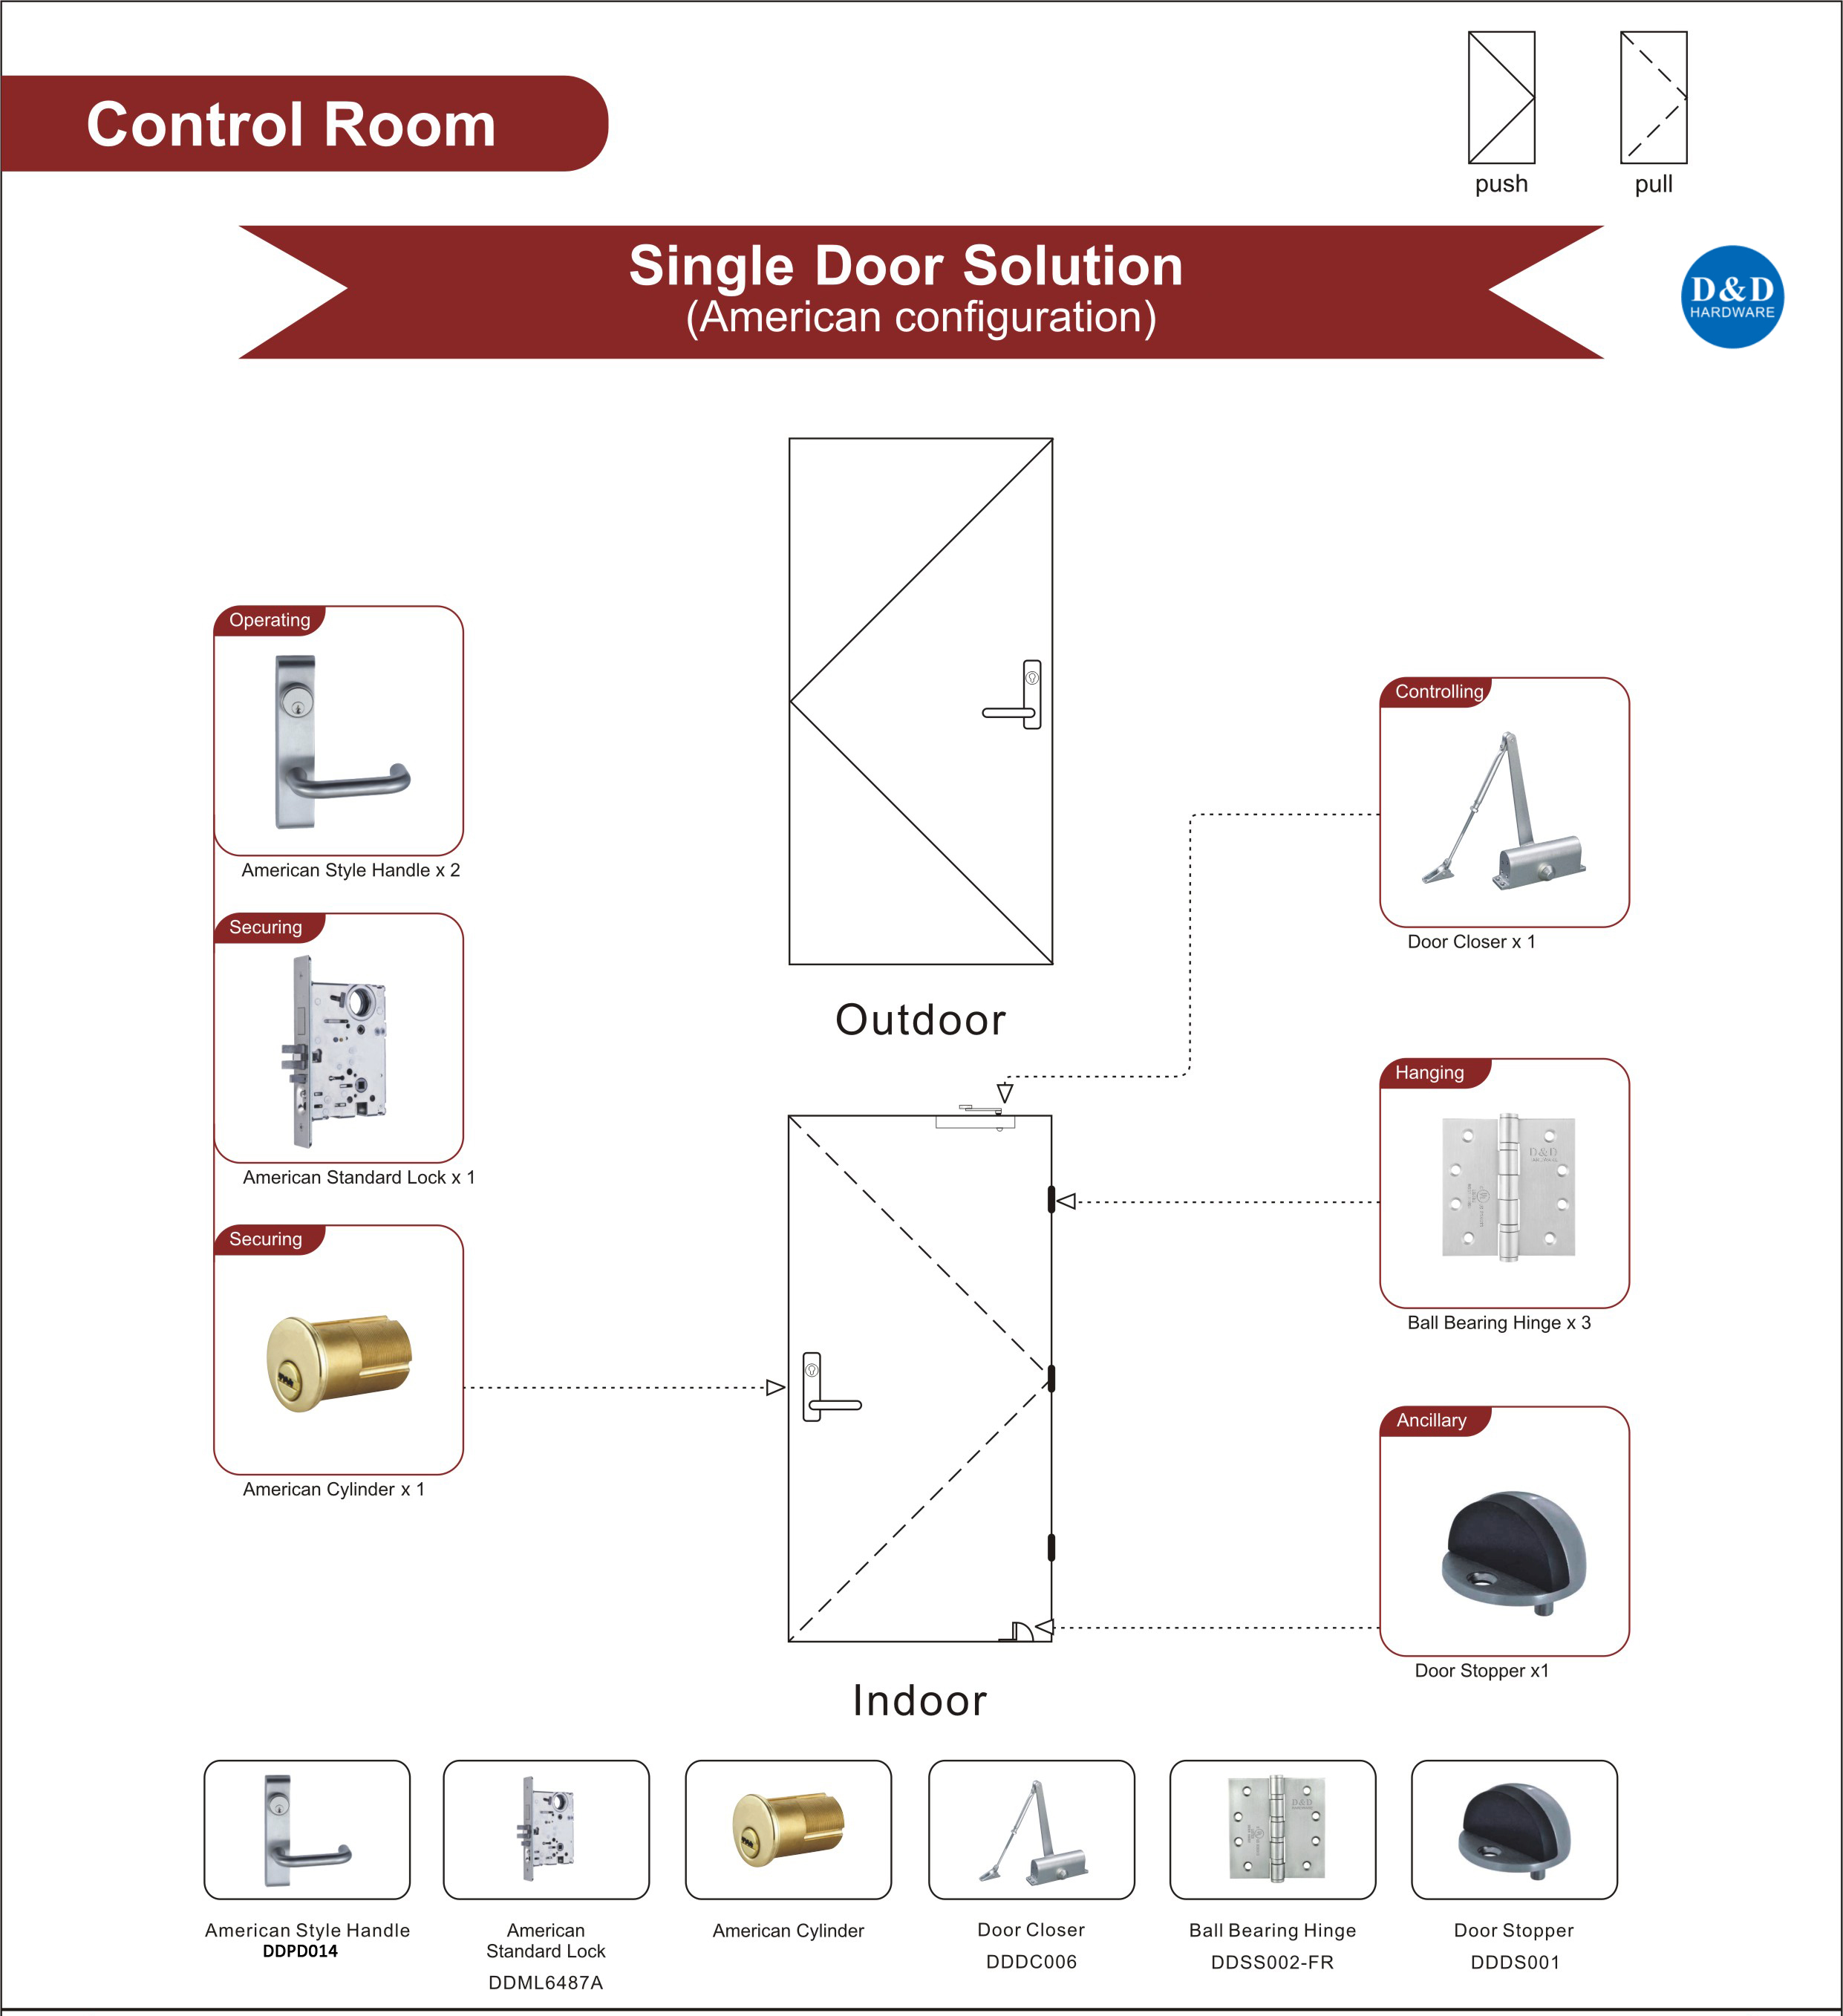 Fire Rated Door Solution